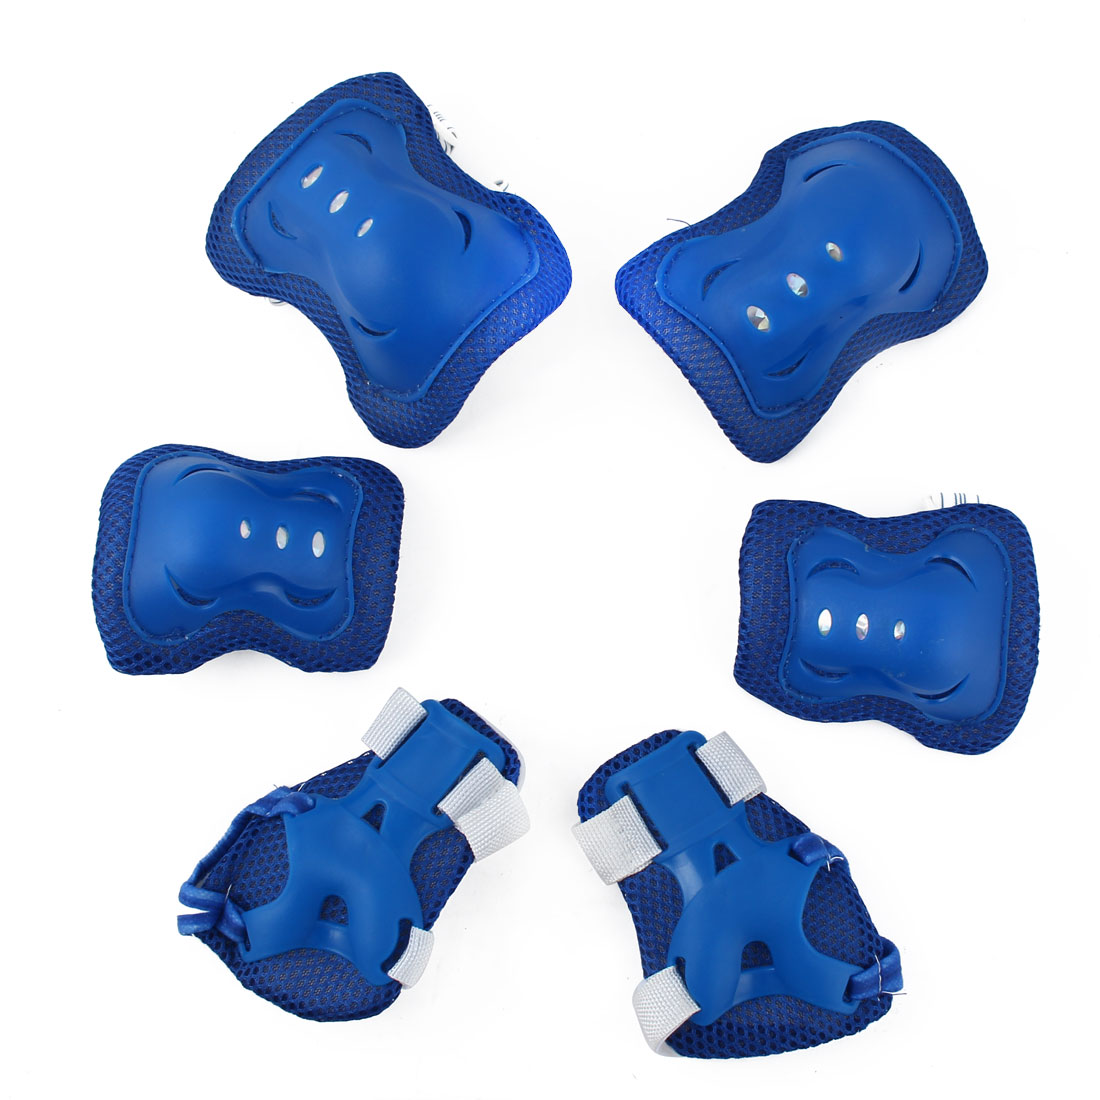 Bicycle Roller Blading Wrist Elbow Knee Guards Pads Support Brace Protector Gear Blue 6 in 1 Set